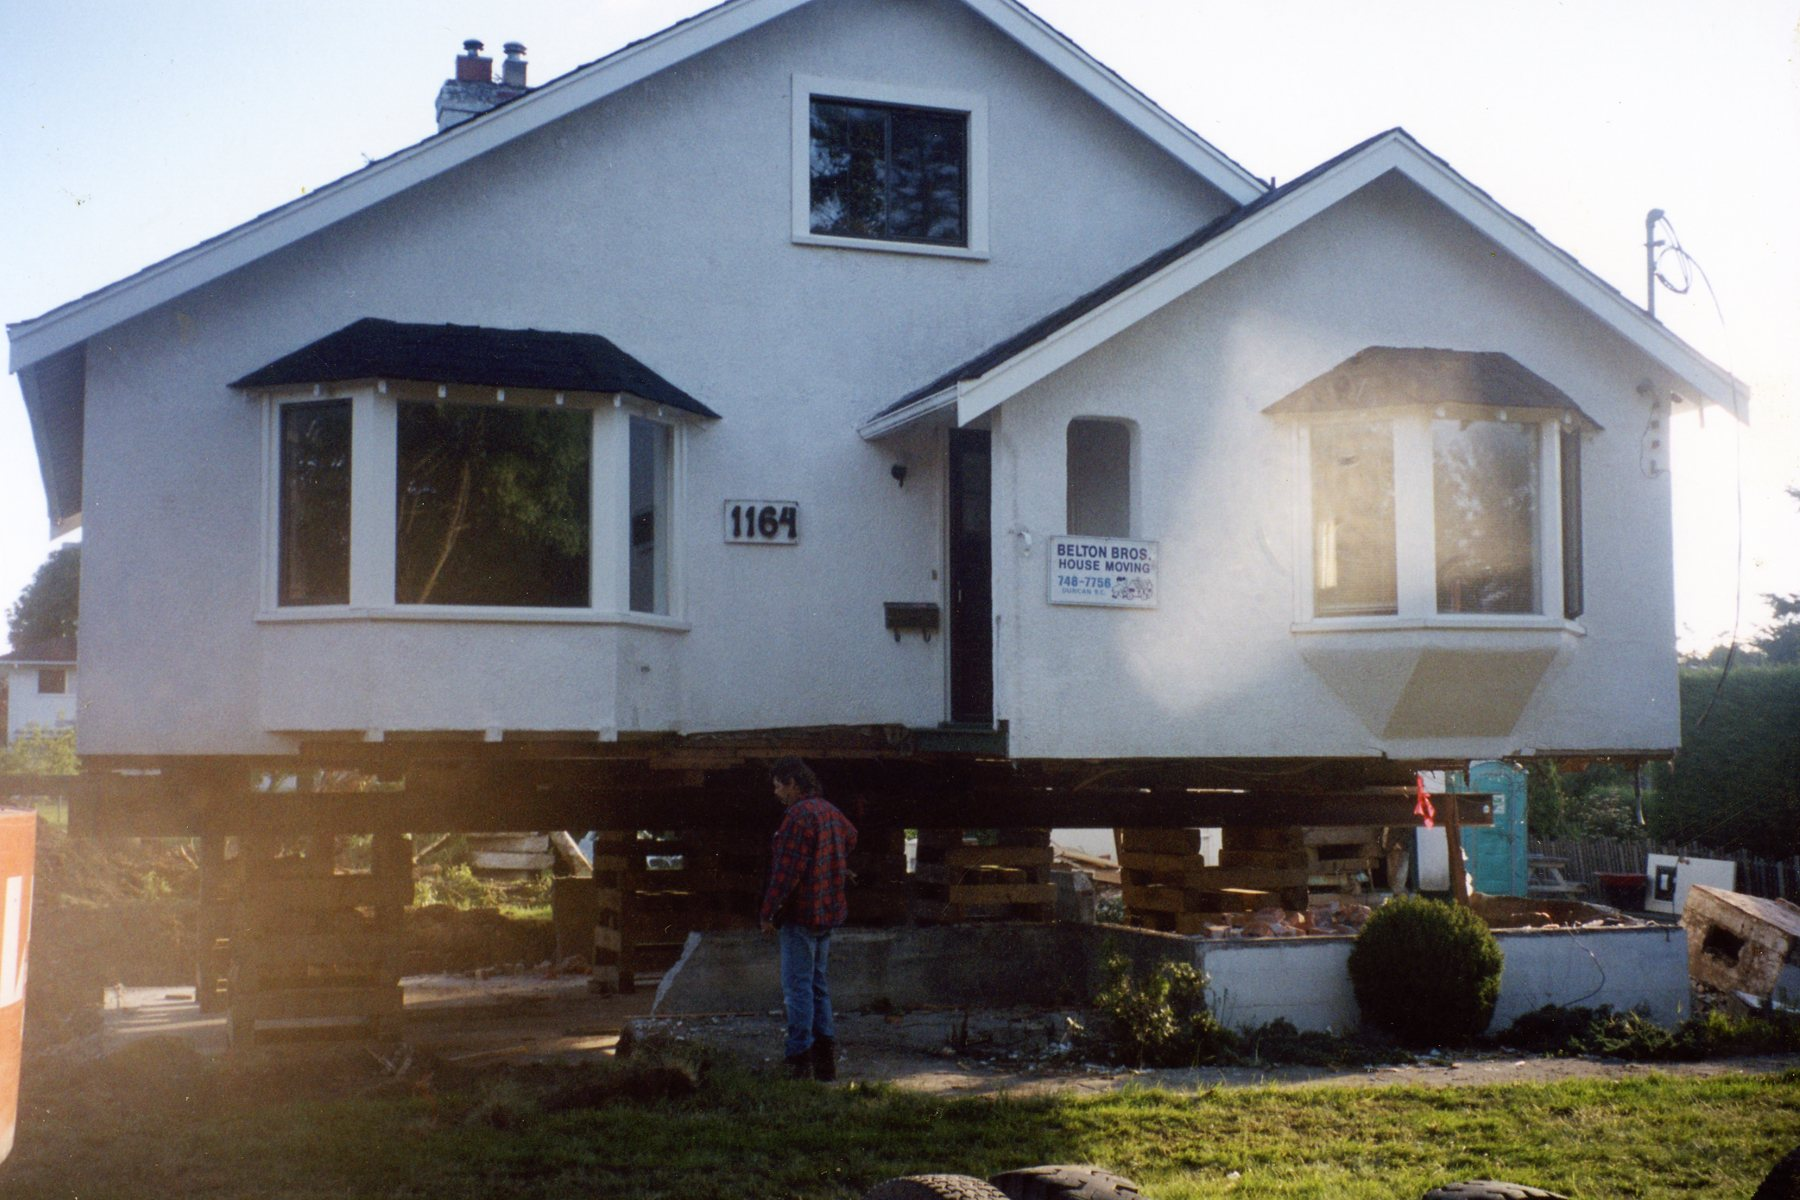 Belton bros  House moving Chemainus BC